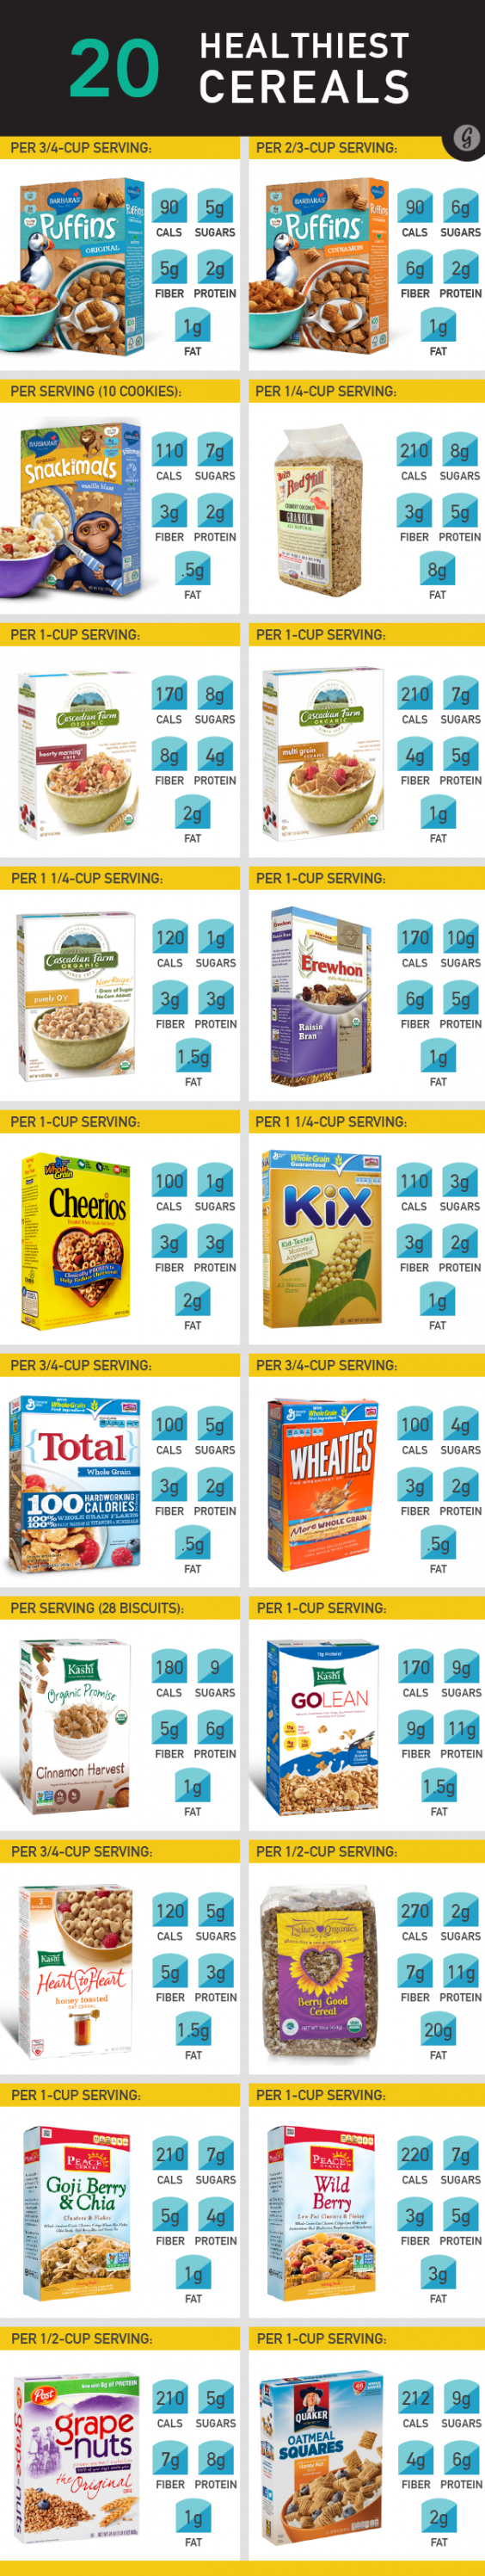 The 20 Healthiest Cereals